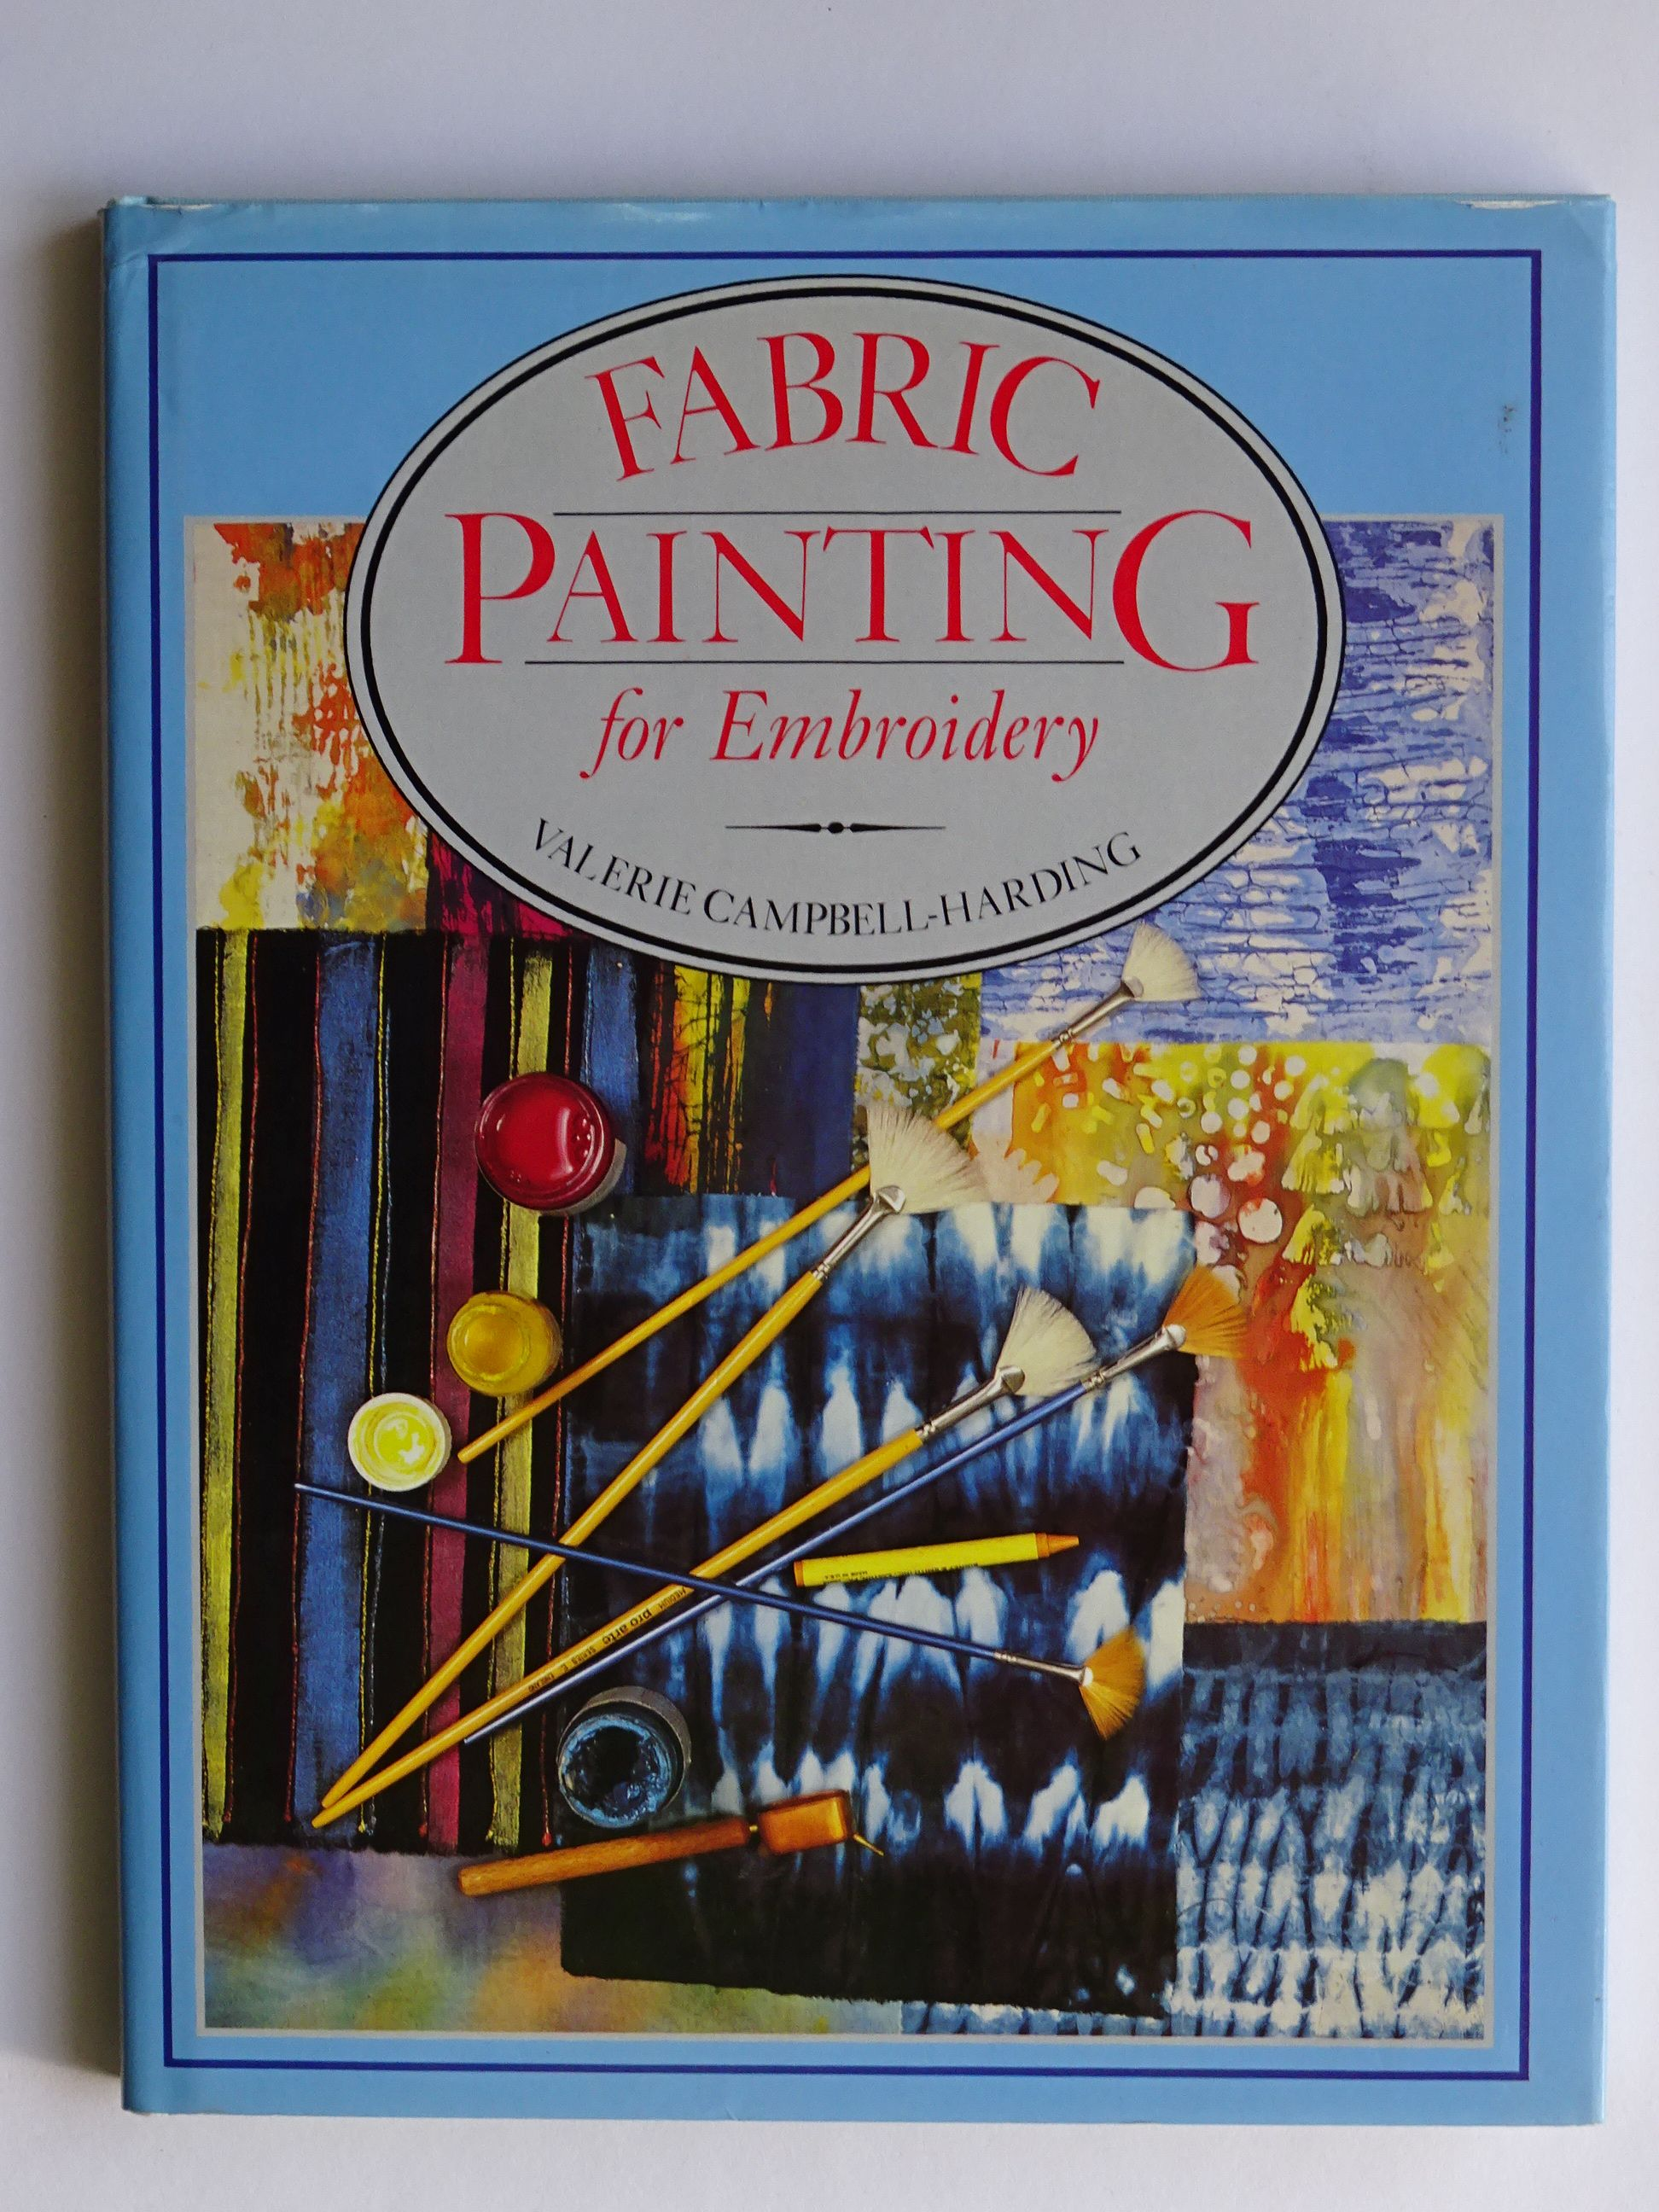 Campbell-Harding, Valerie - Fabric Painting for Embroidery